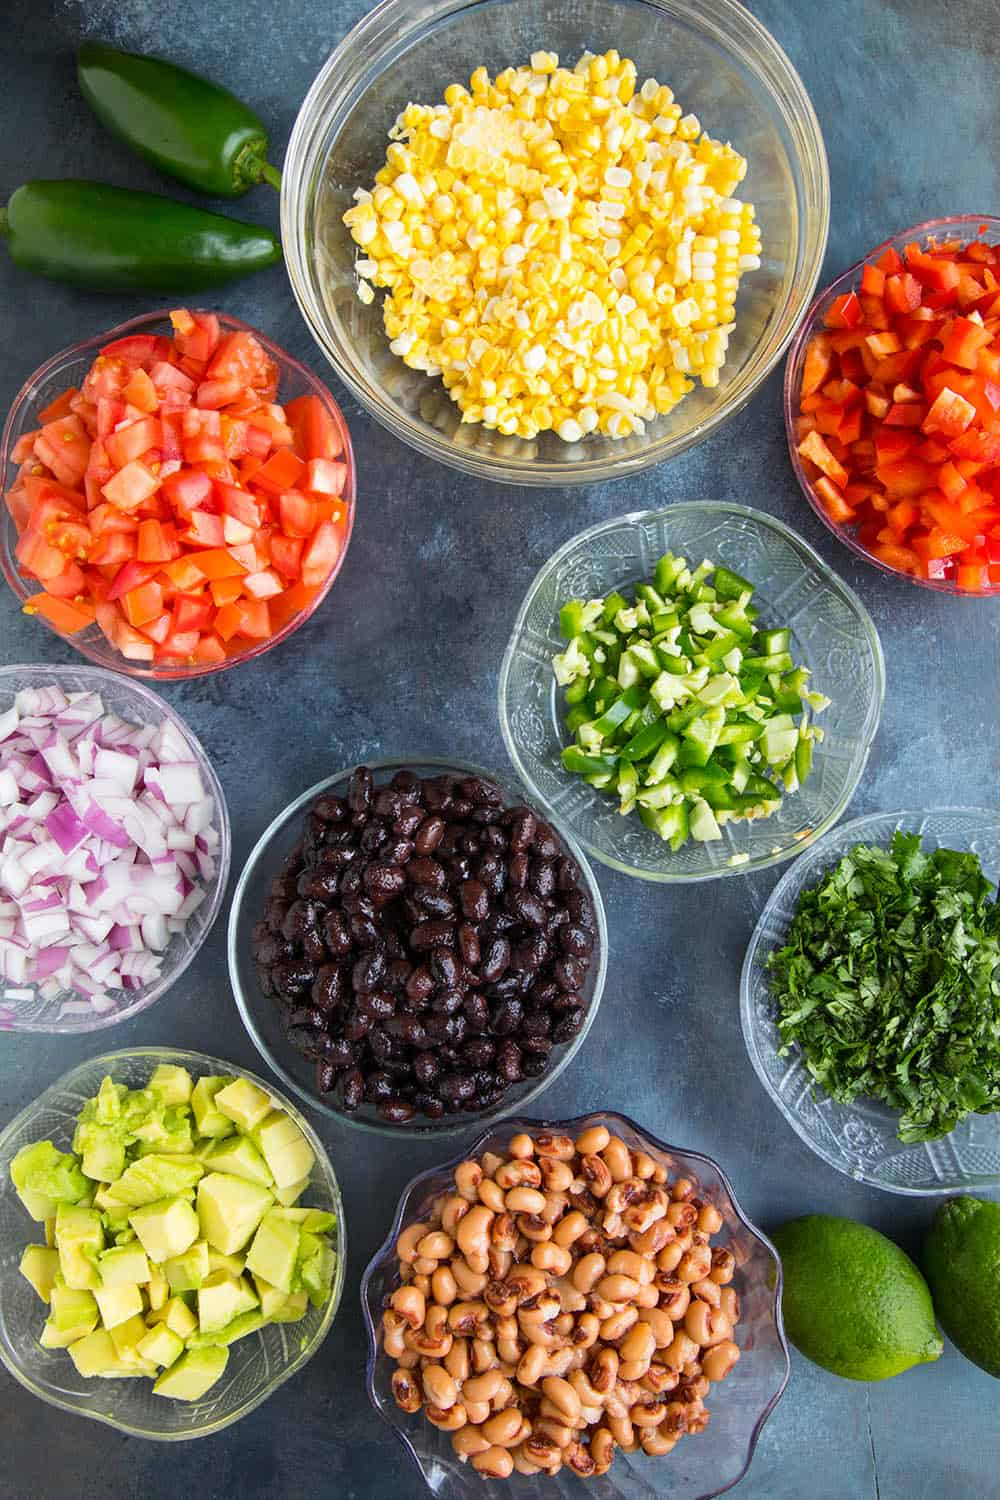 Ingredients for making Cowboy Caviar